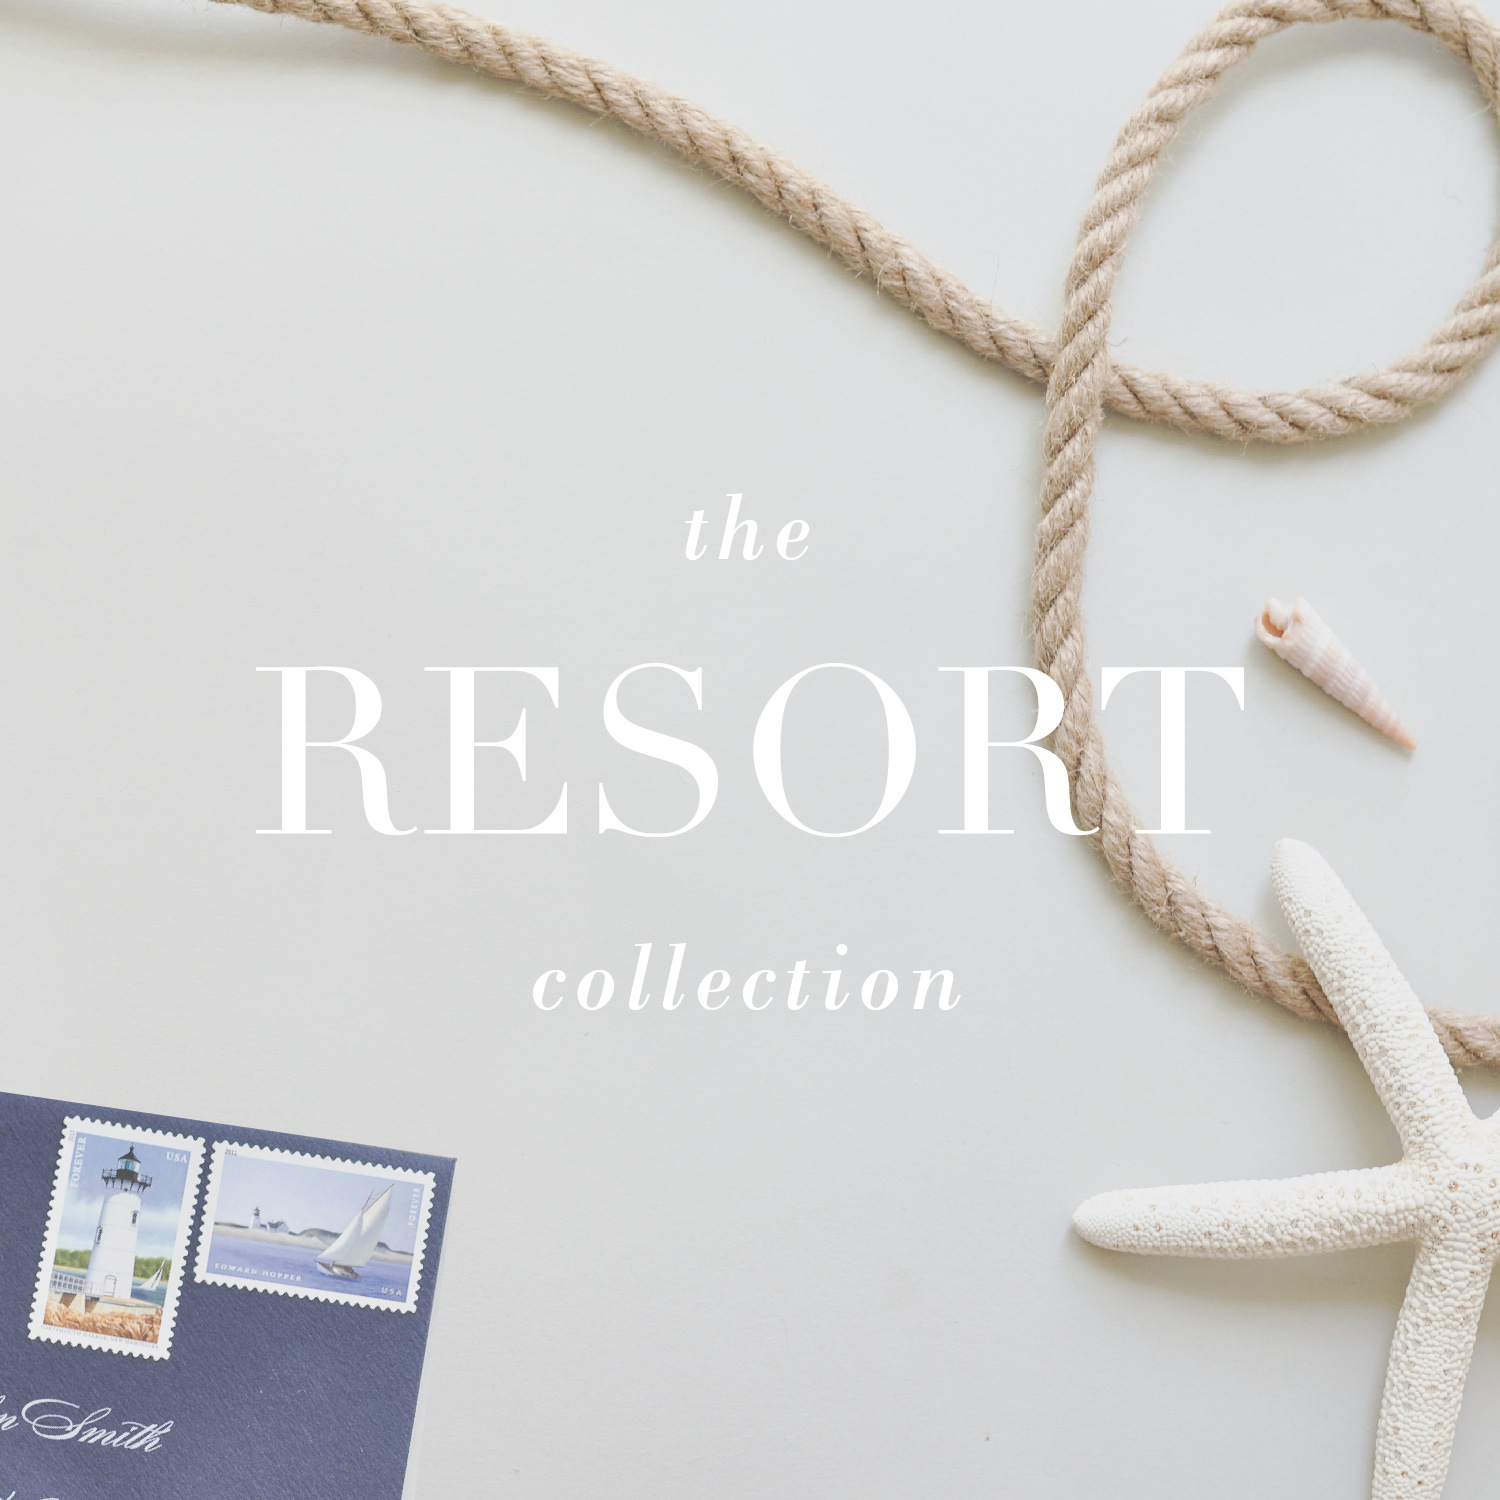 The Resort Collection Lauren chism Fine Papers2-01.jpg